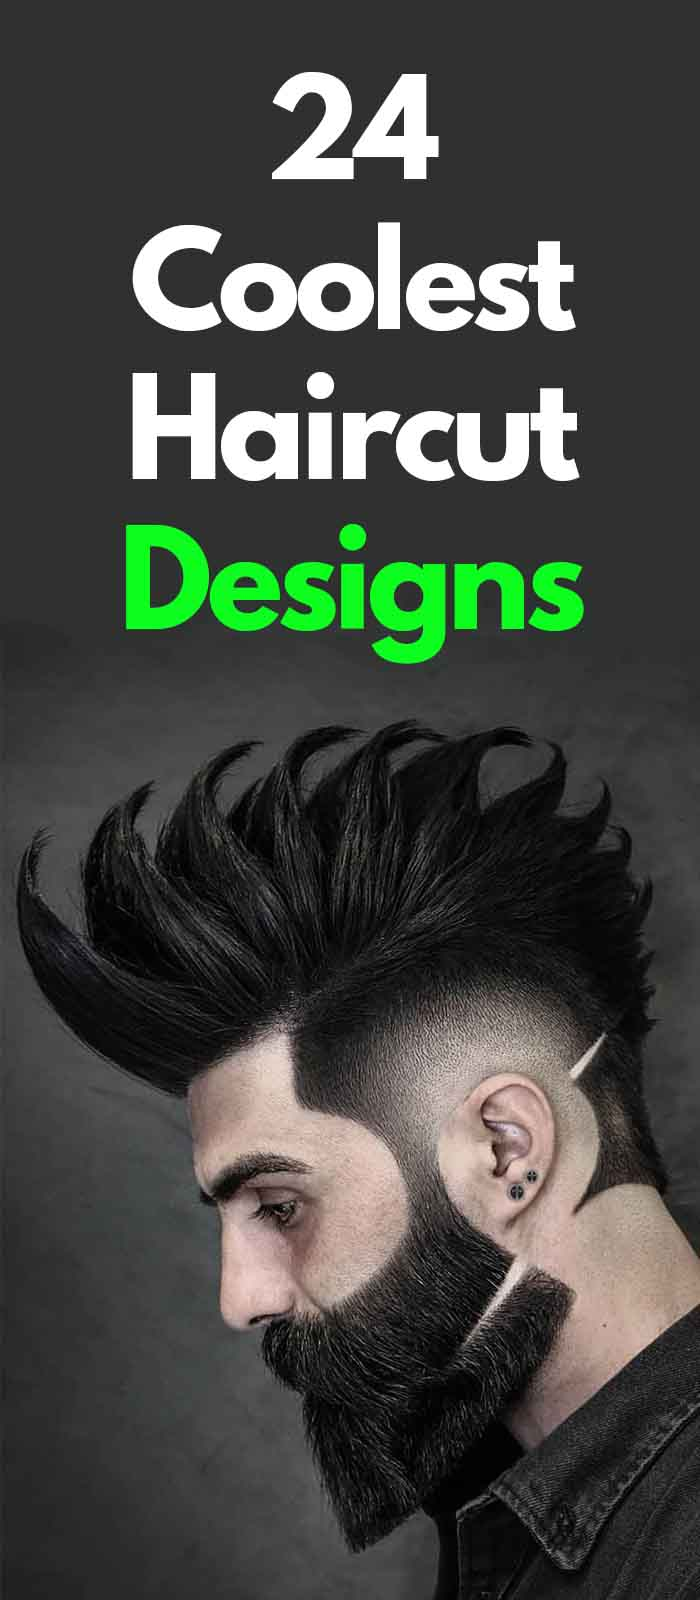 Coolest Haircut Designs 2019